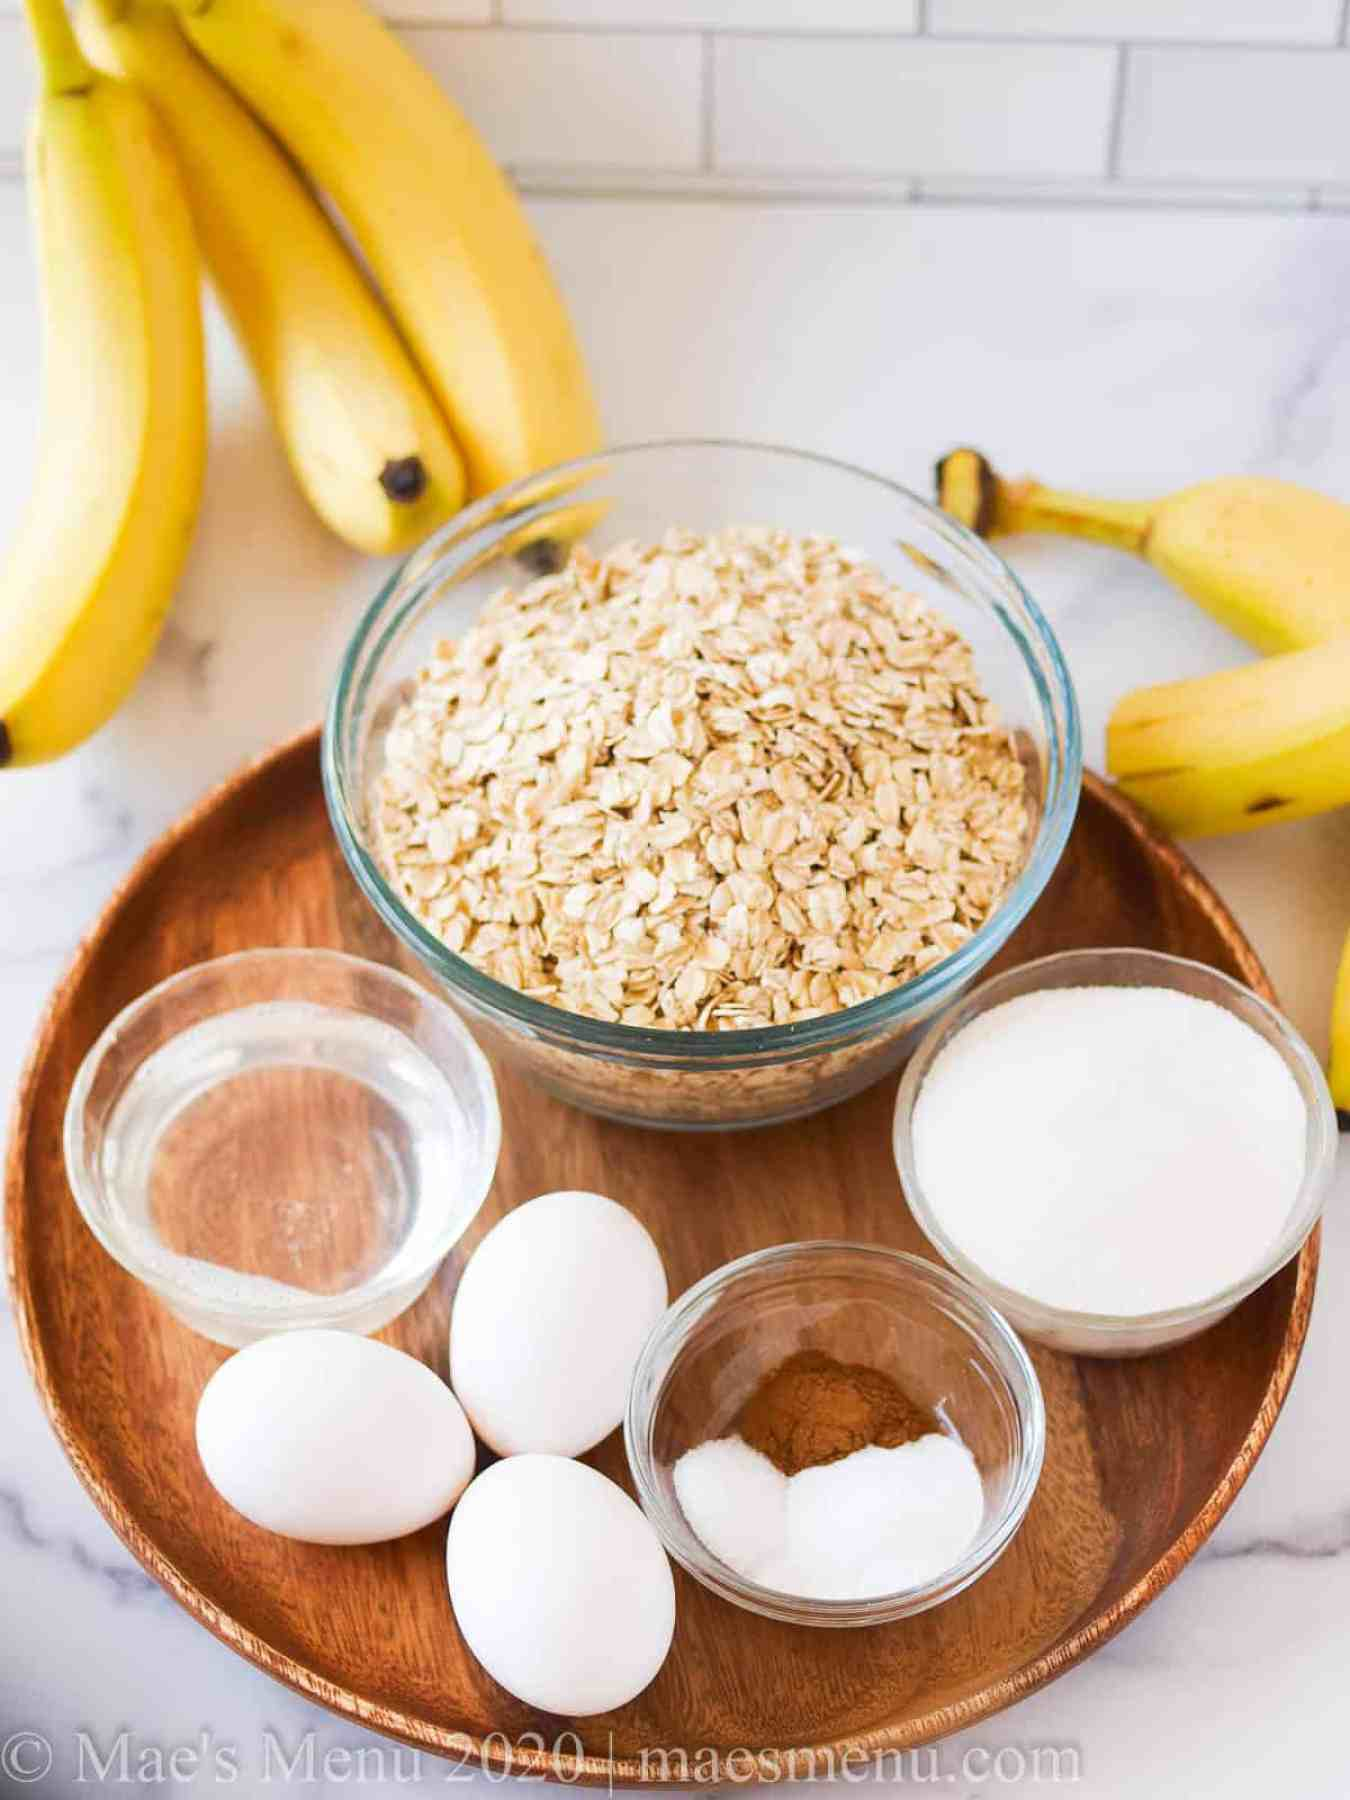 All the ingredients for banana oatmeal cake recipe.